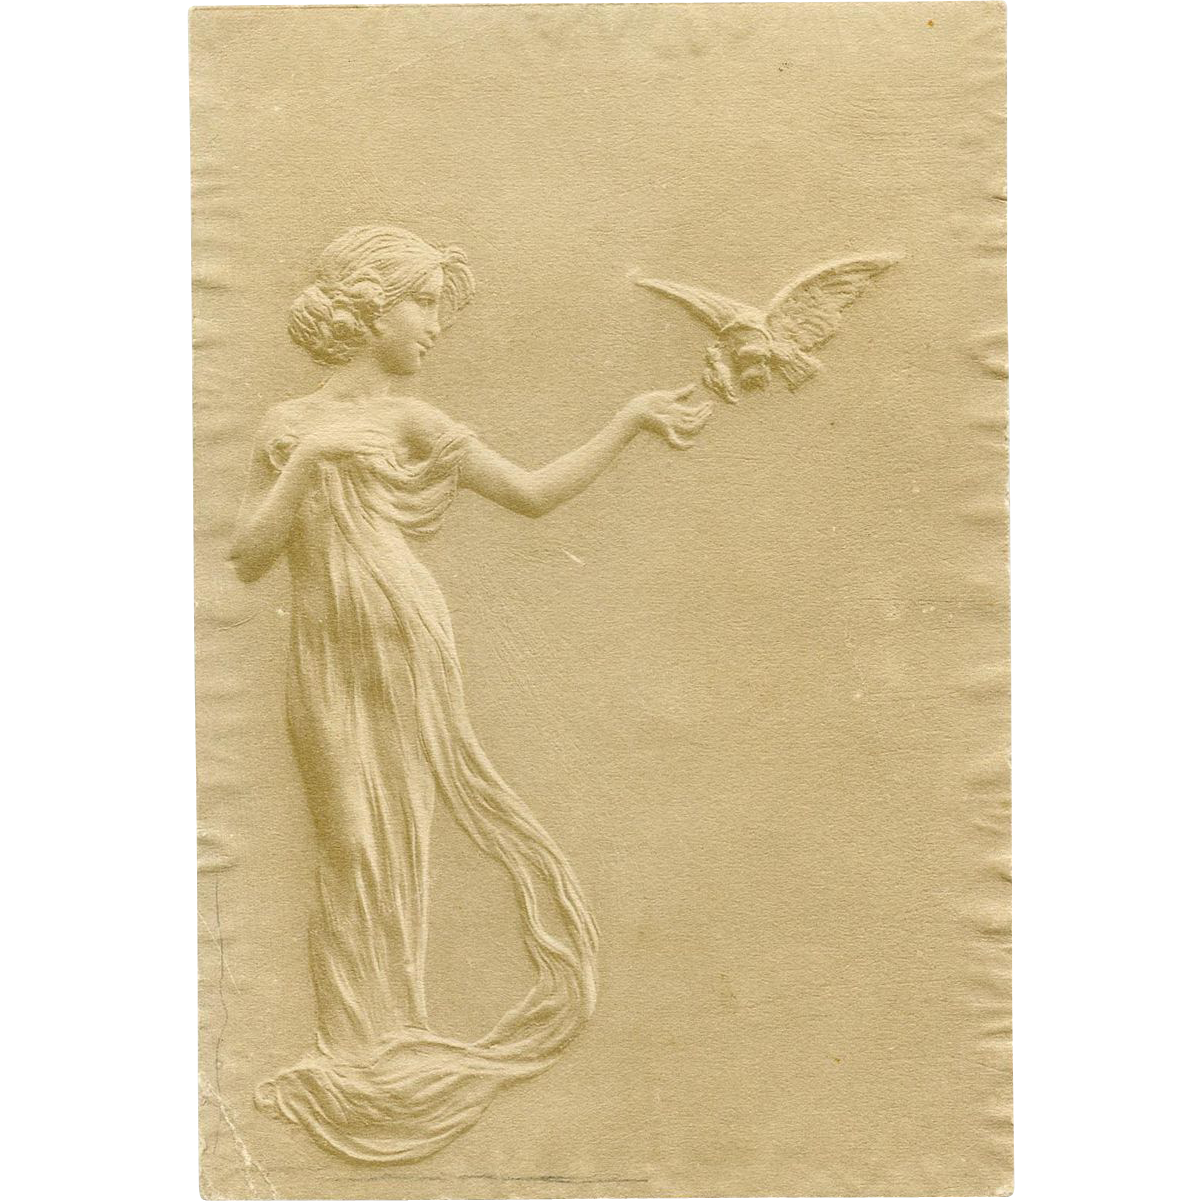 Art Nouveau Illustration with Embossed Edges of Woman with Bird